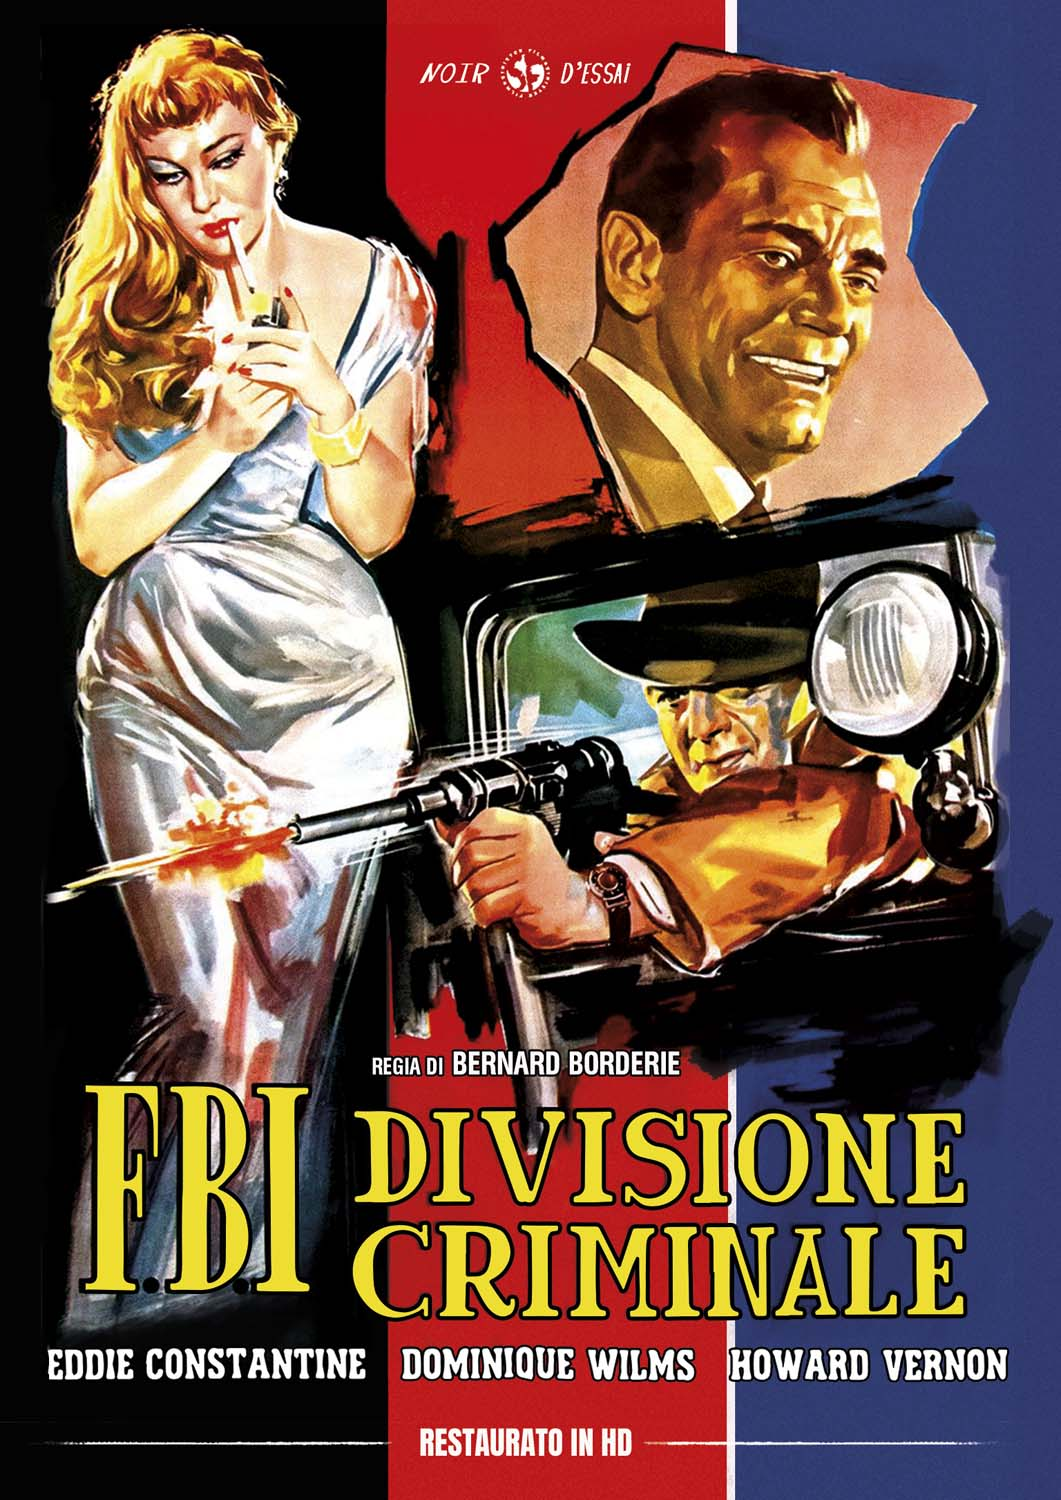 F.B.I. DIVISIONE CRIMINALE (RESTAURATO IN HD) (DVD)